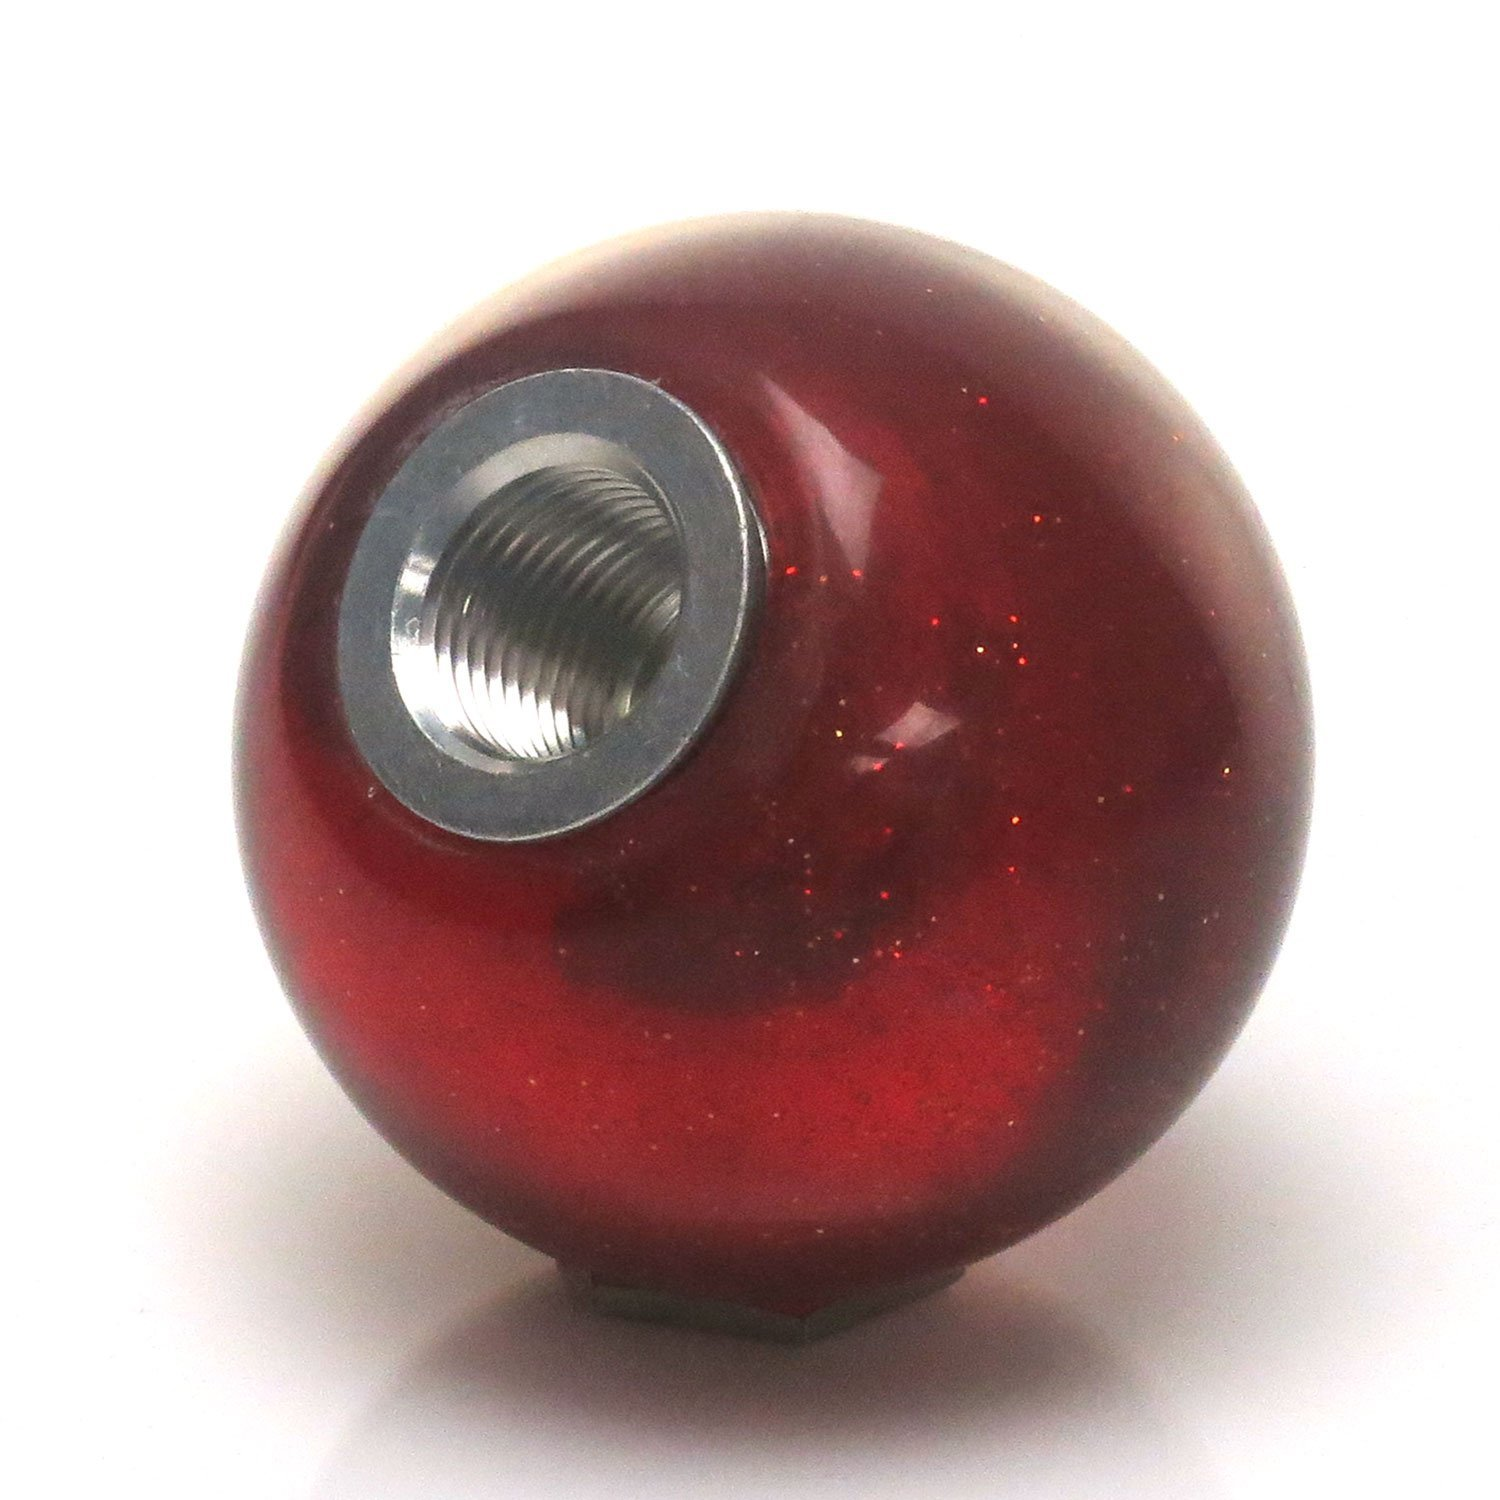 American Shifter 282216 Shift Knob Blue Jackie Chan Red Metal Flake with M16 x 1.5 Insert